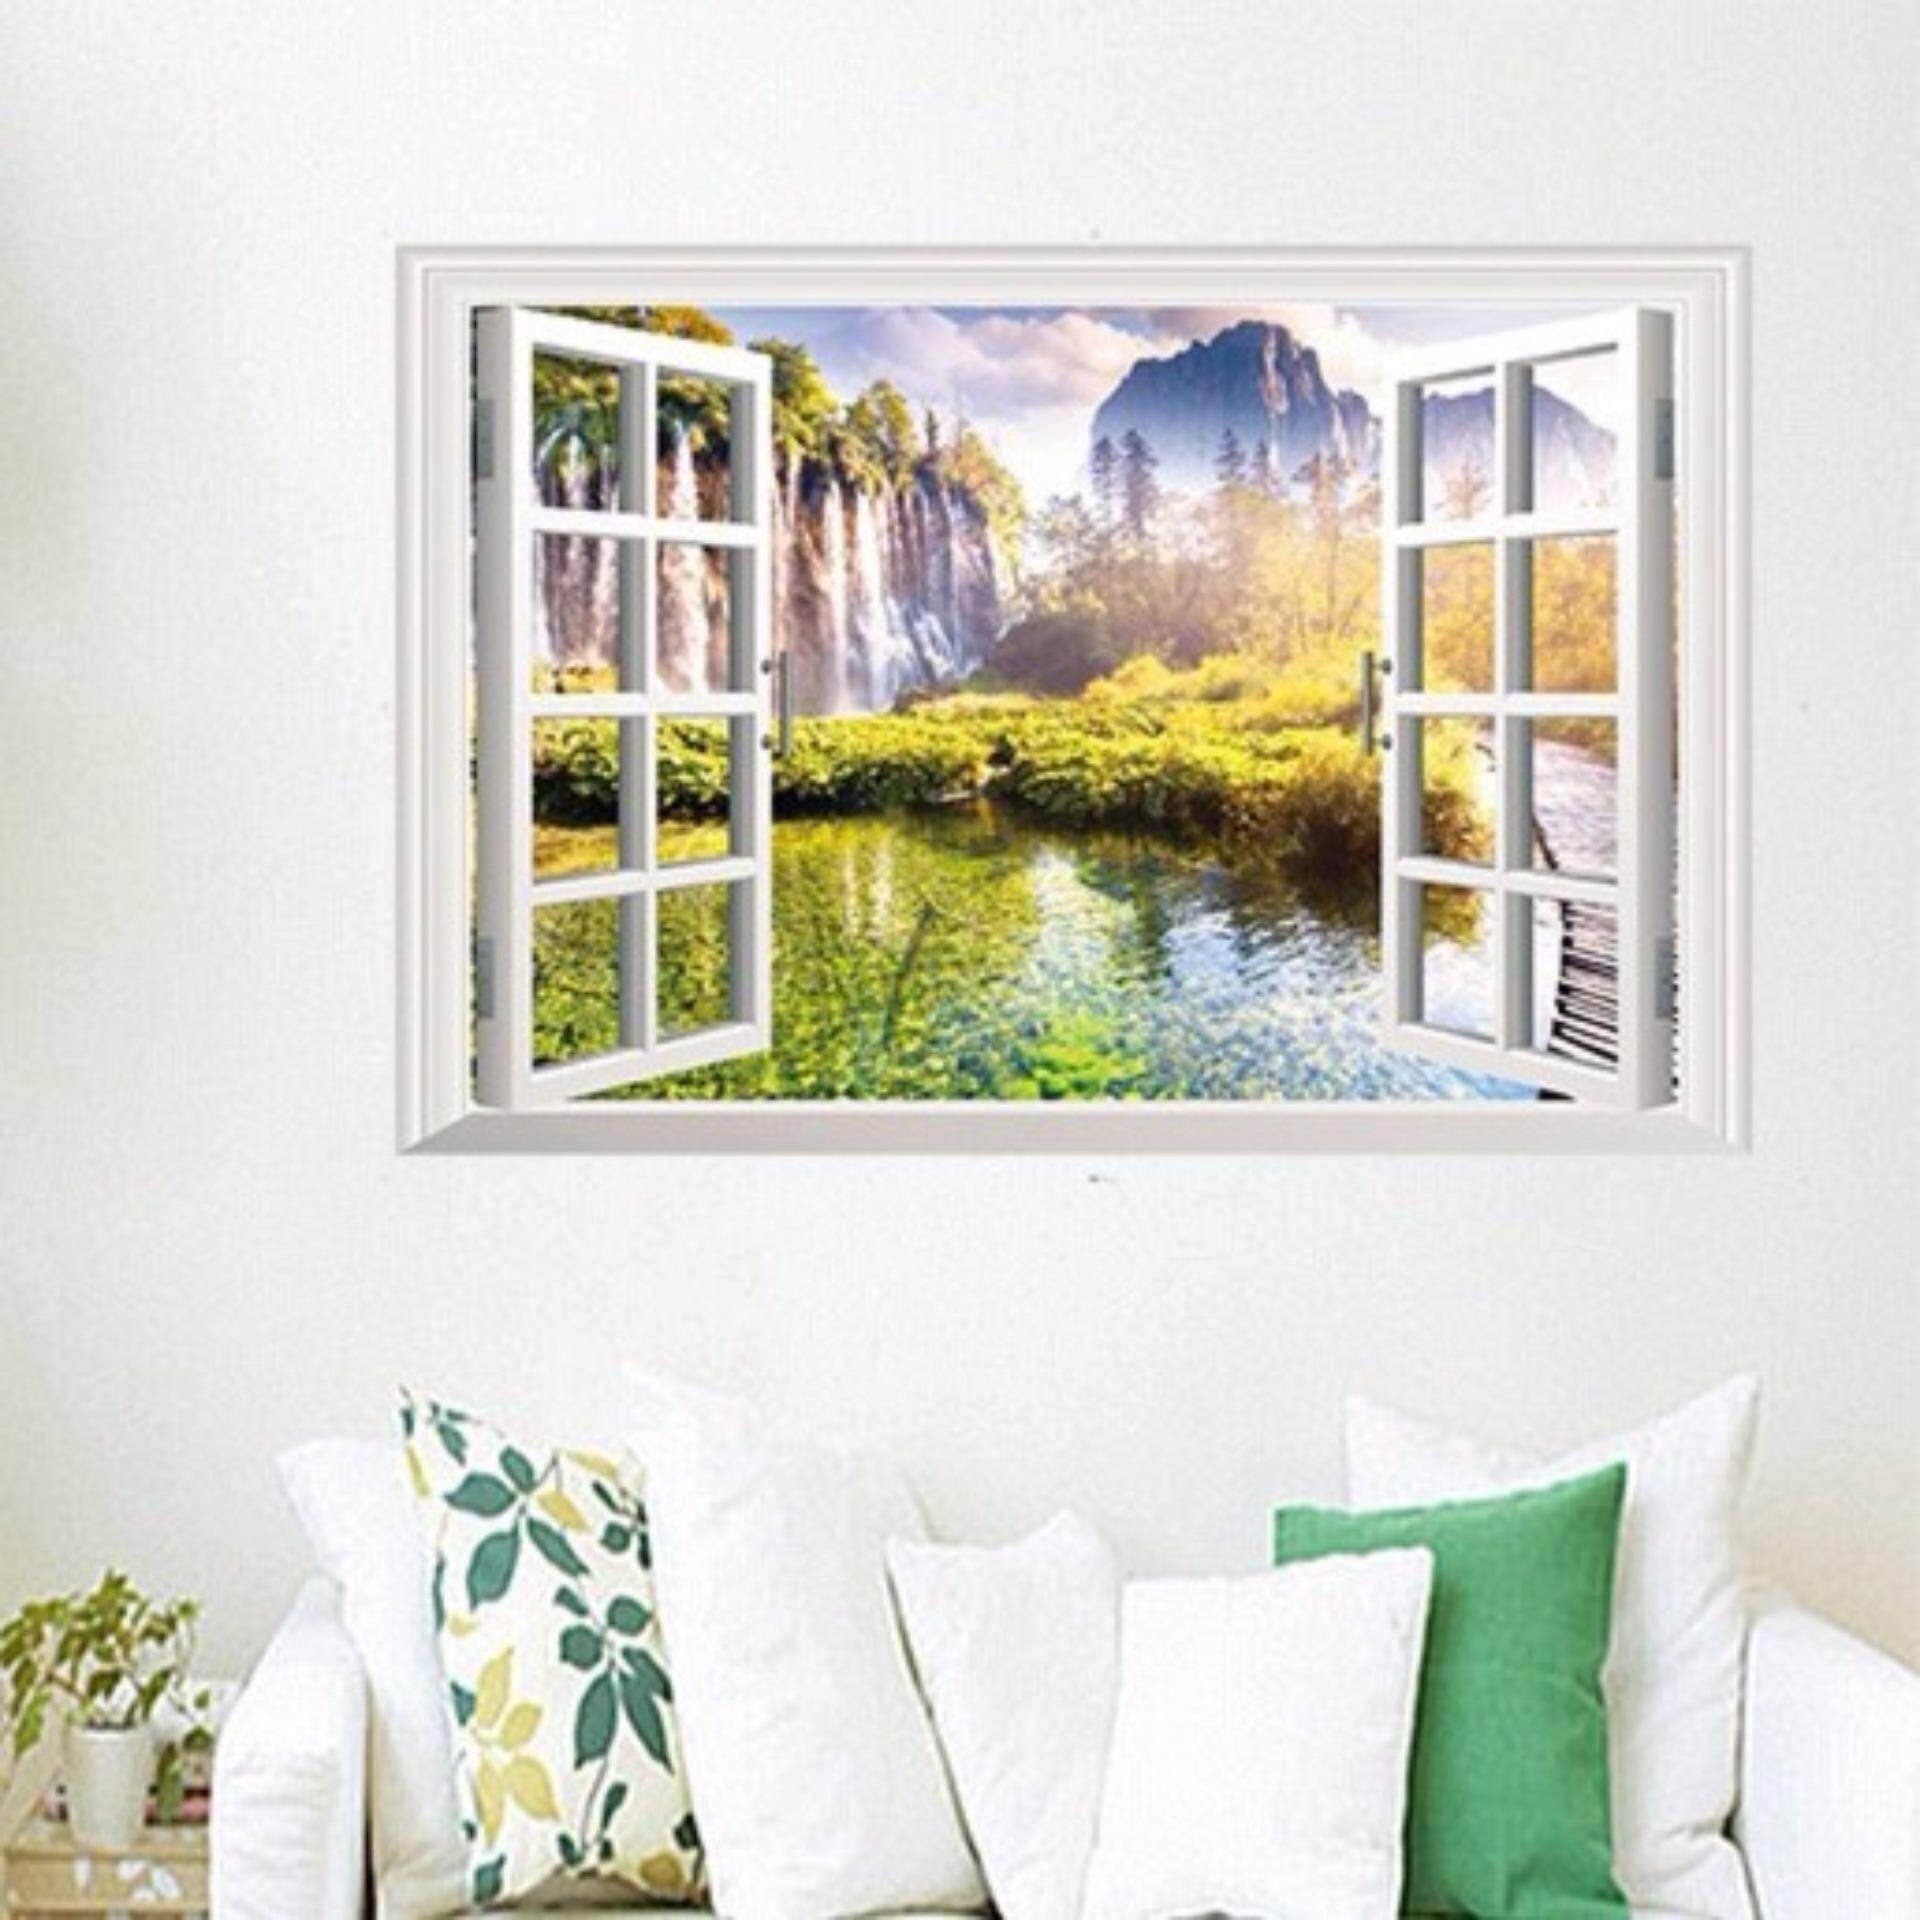 3D Removable Diy Home Decal Decor Wall Art Stickers Mural